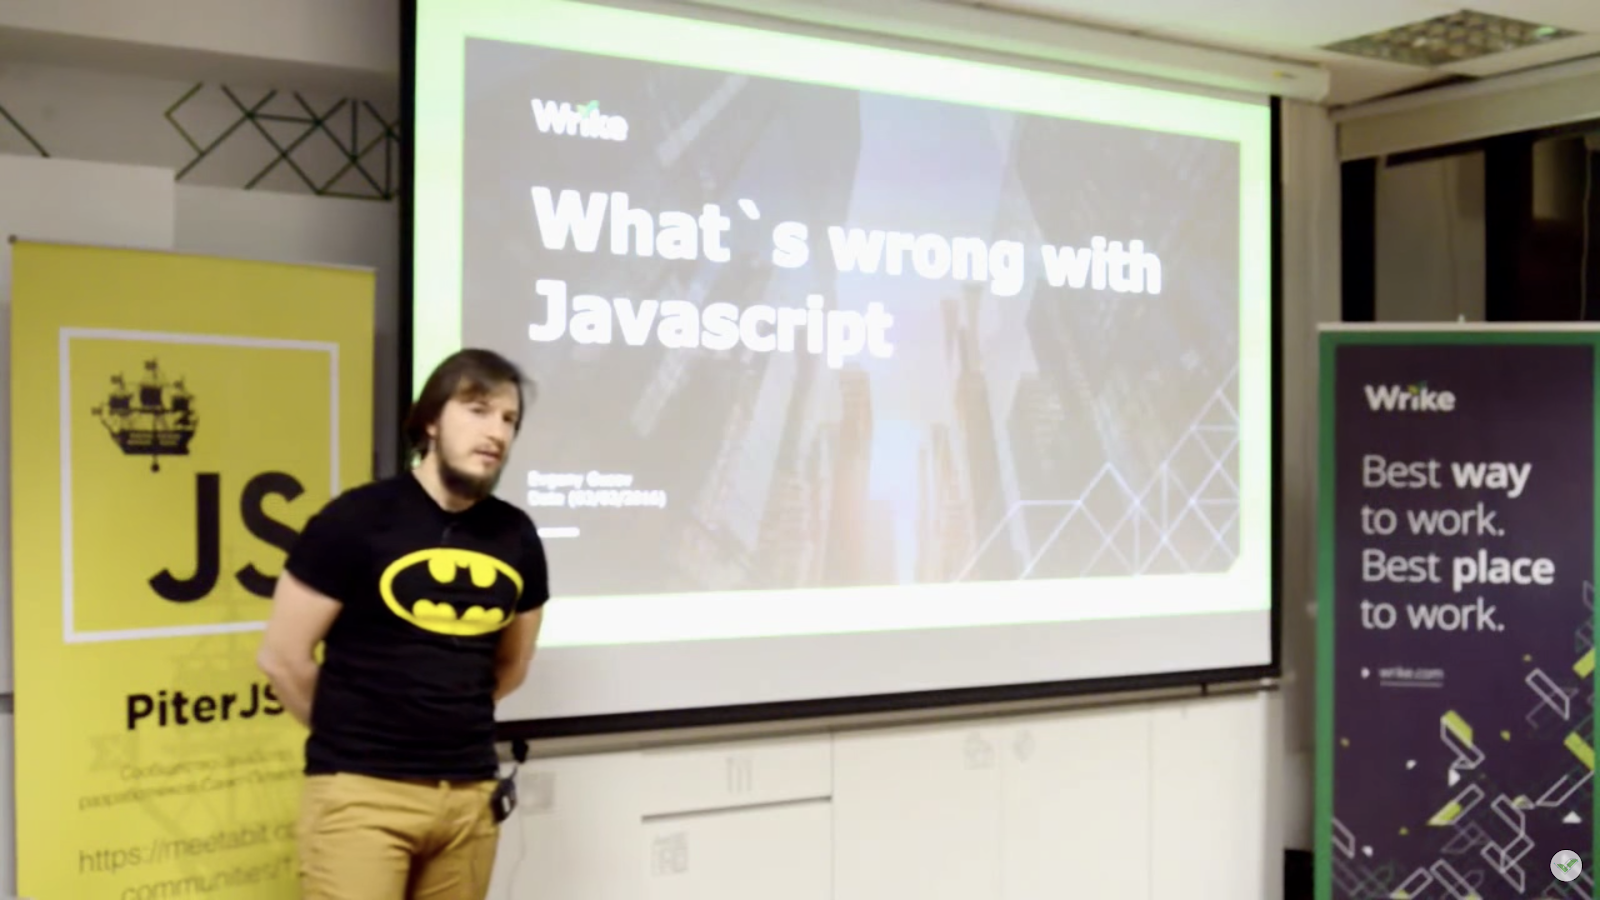 Image of Evgeny giving a public talk about the benefits of shifting to Dart